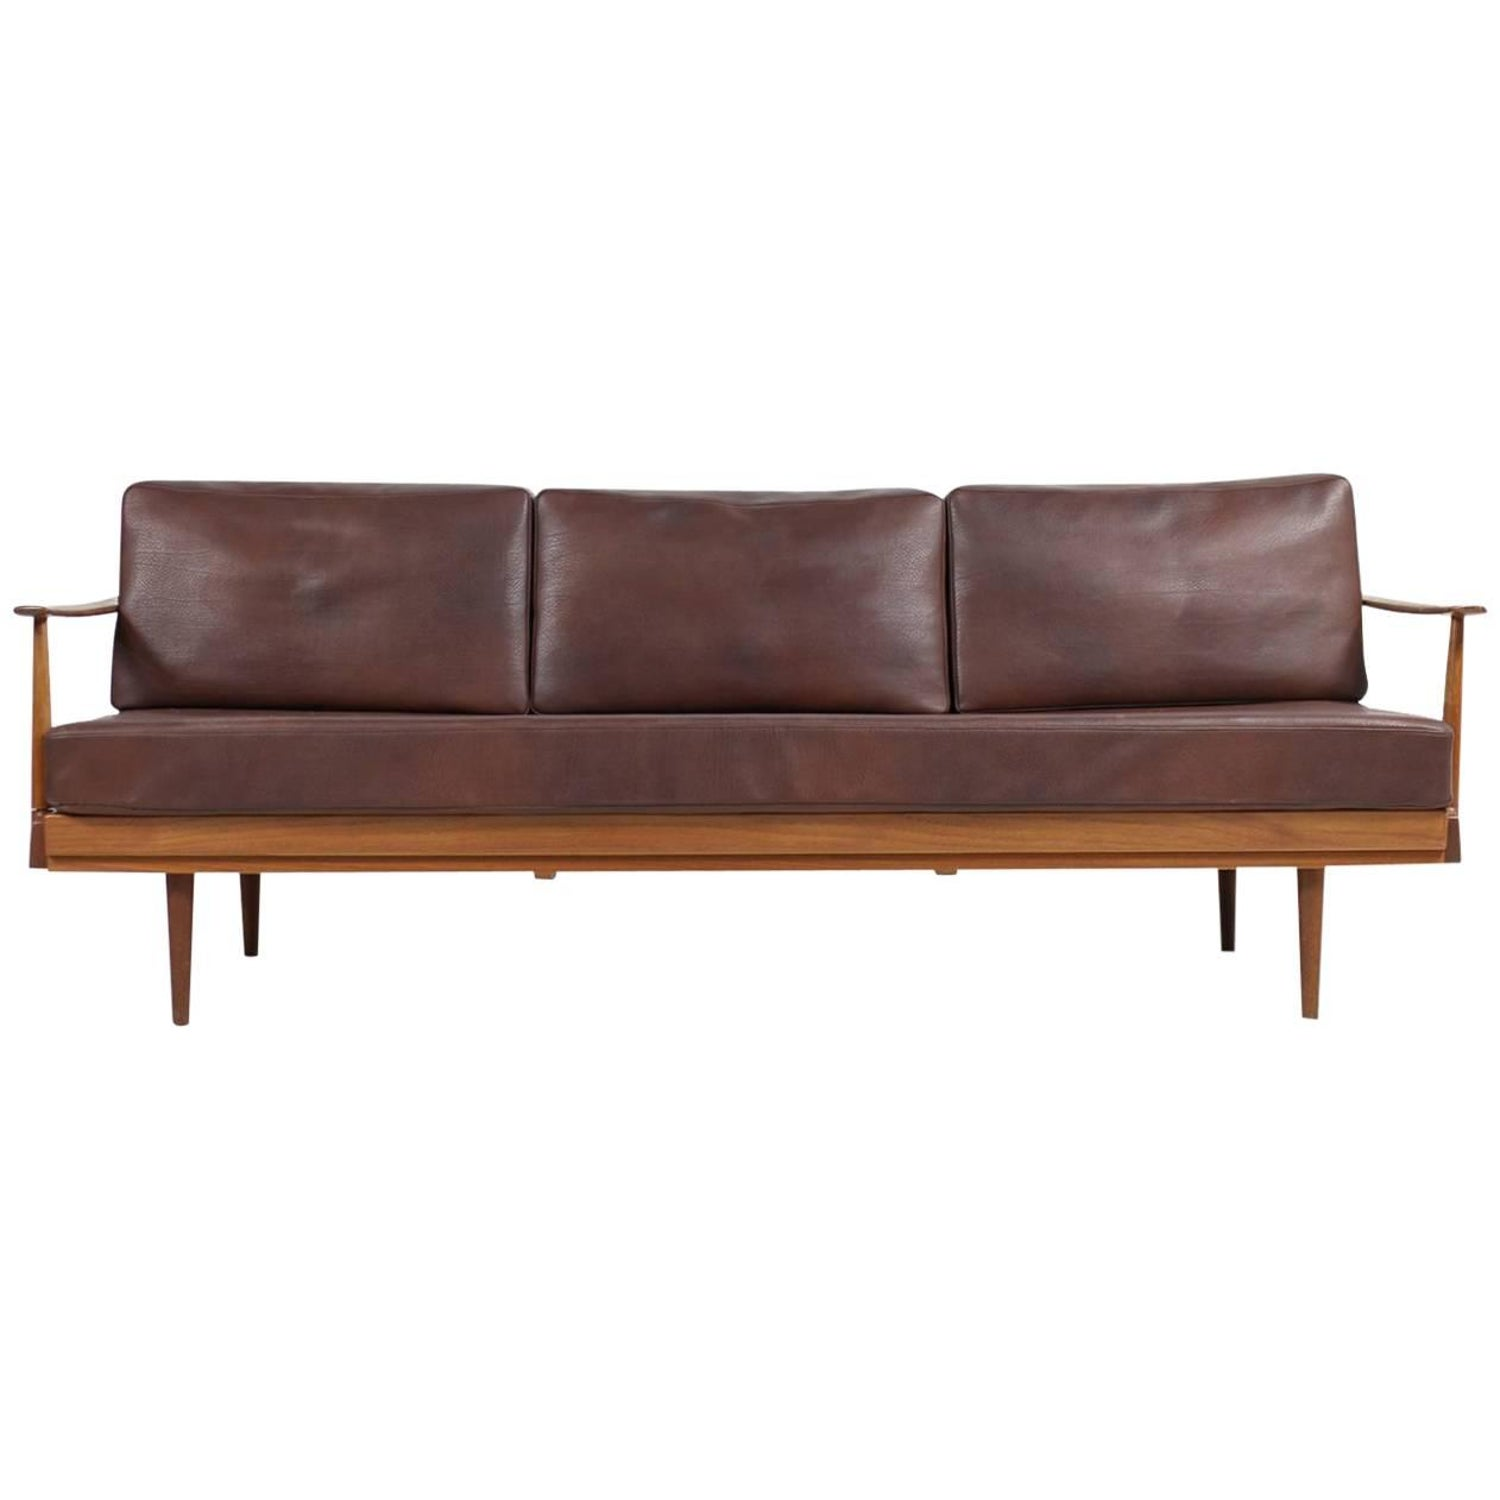 Mid Century Modern Orange Convertible Daybed Sofa For Sale at 1stdibs